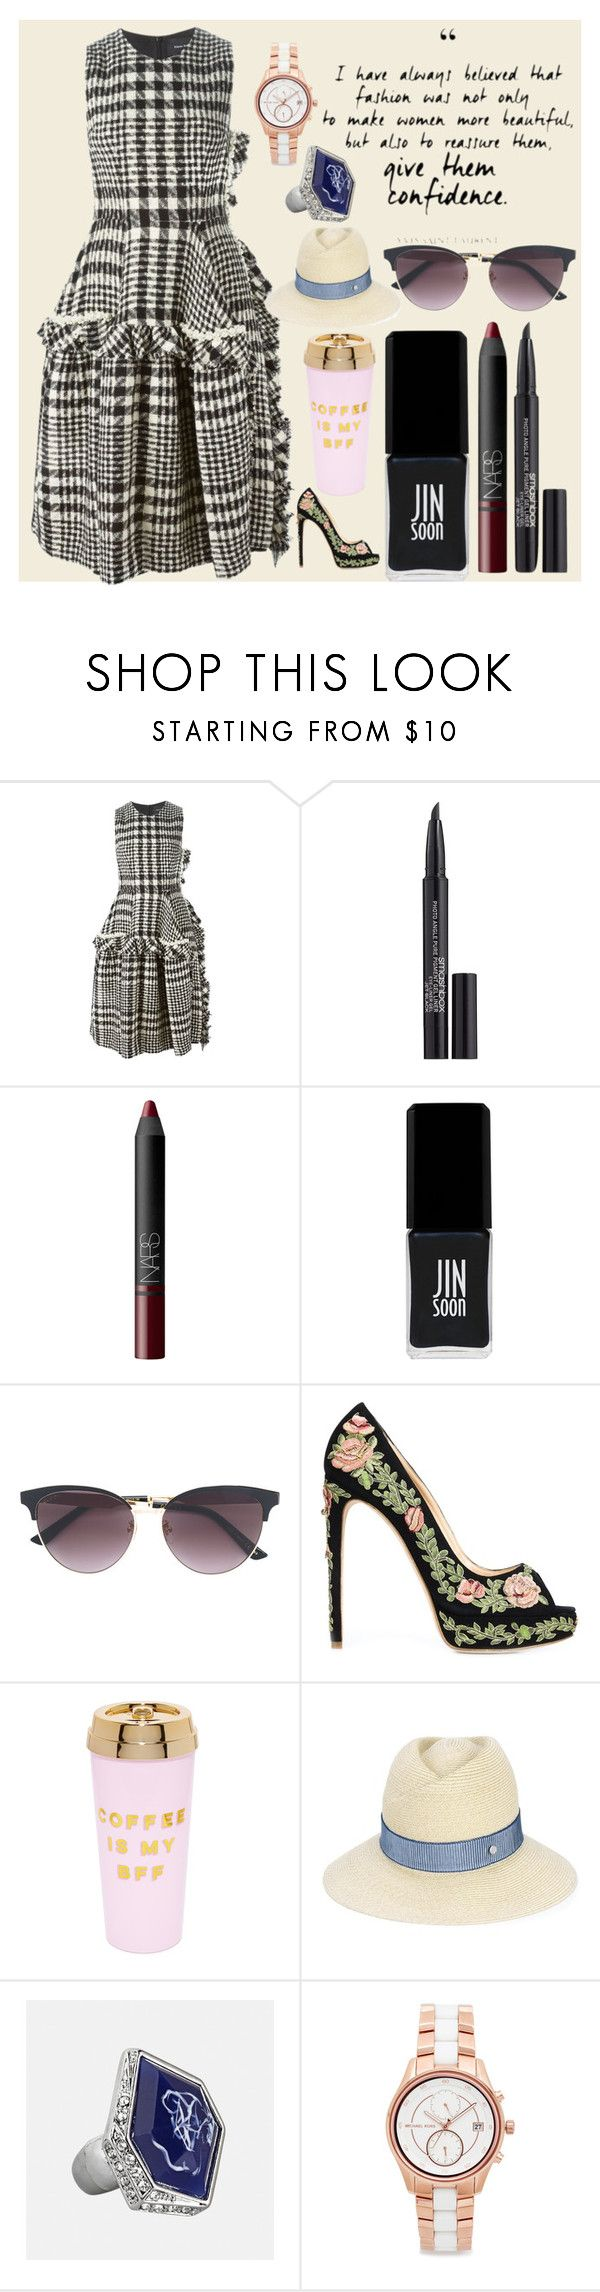 """Beautiful things defines beauty"" by gadinarmada-1 ❤ liked on Polyvore featuring Simone Rocha, Smashbox, NARS Cosmetics, JINsoon, Gucci, Marchesa, ban.do, Maison Michel, Avenue and Michael Kors"